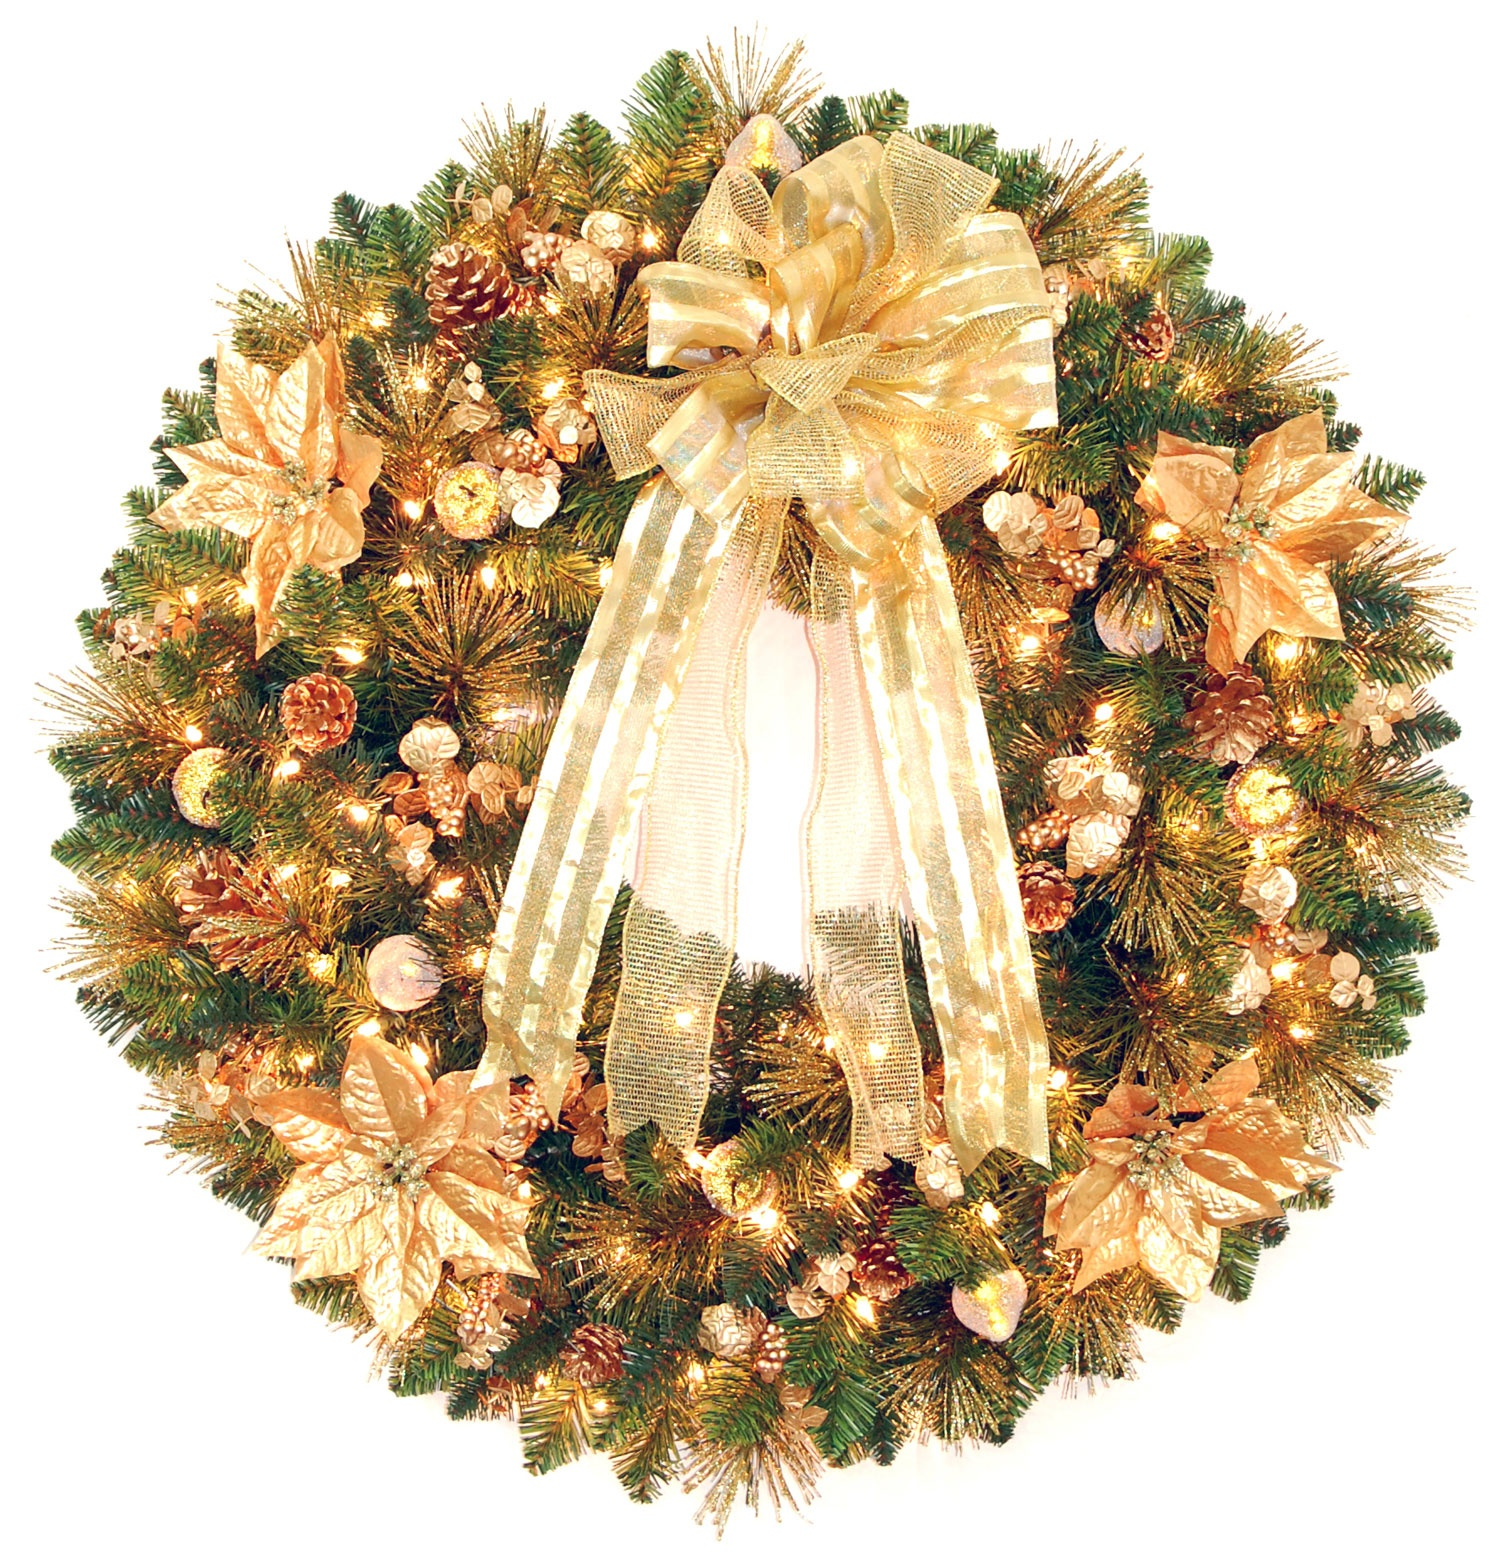 Decorative Wreaths - Harvest Gold Deluxe Prelit Christmas Wreath, Clear Lights